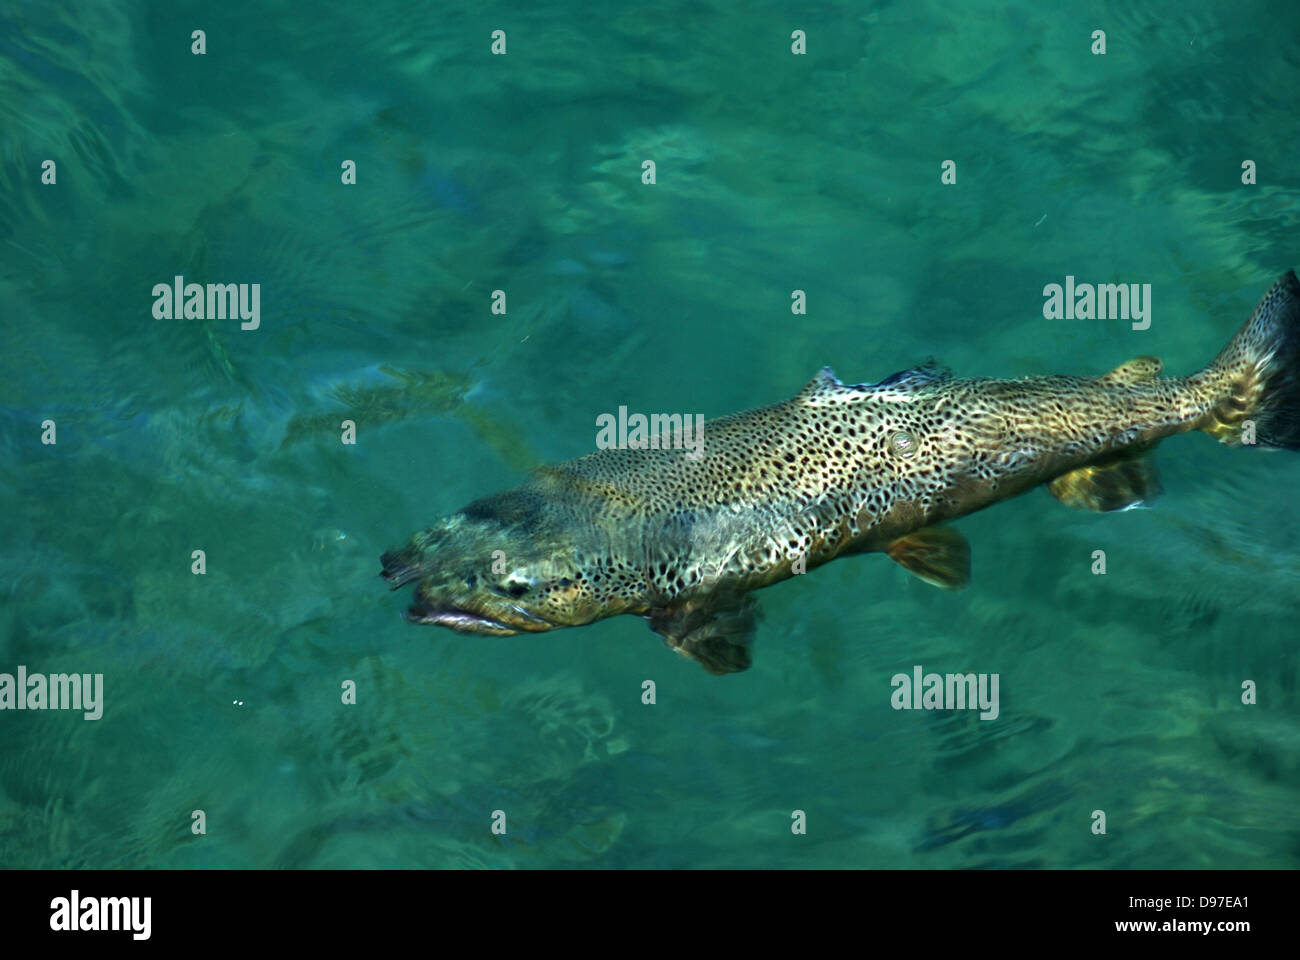 Brown trout in the Truckee River, California - Stock Image